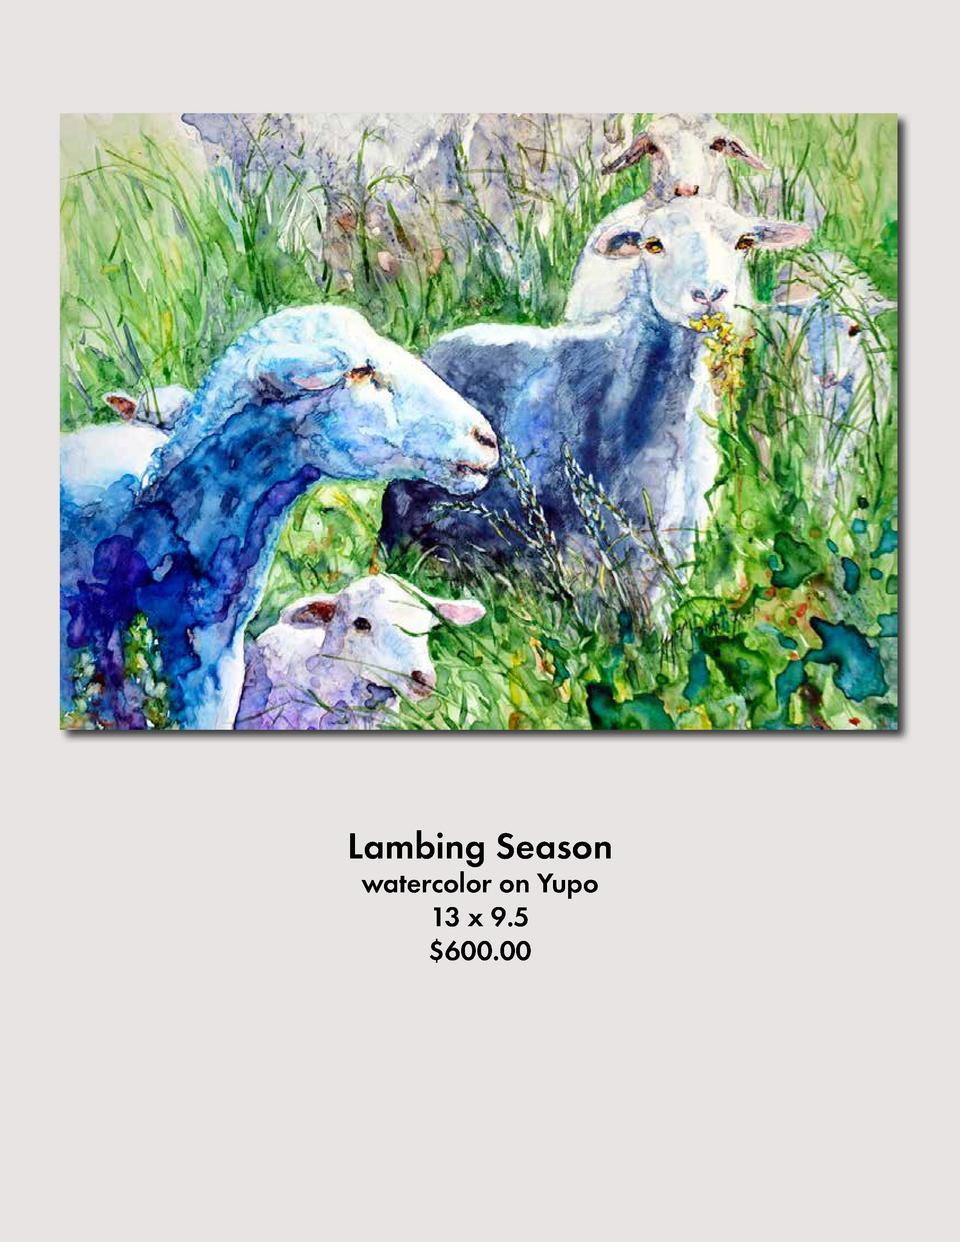 Lambing Season watercolor on Yupo 13 x 9.5  600.00